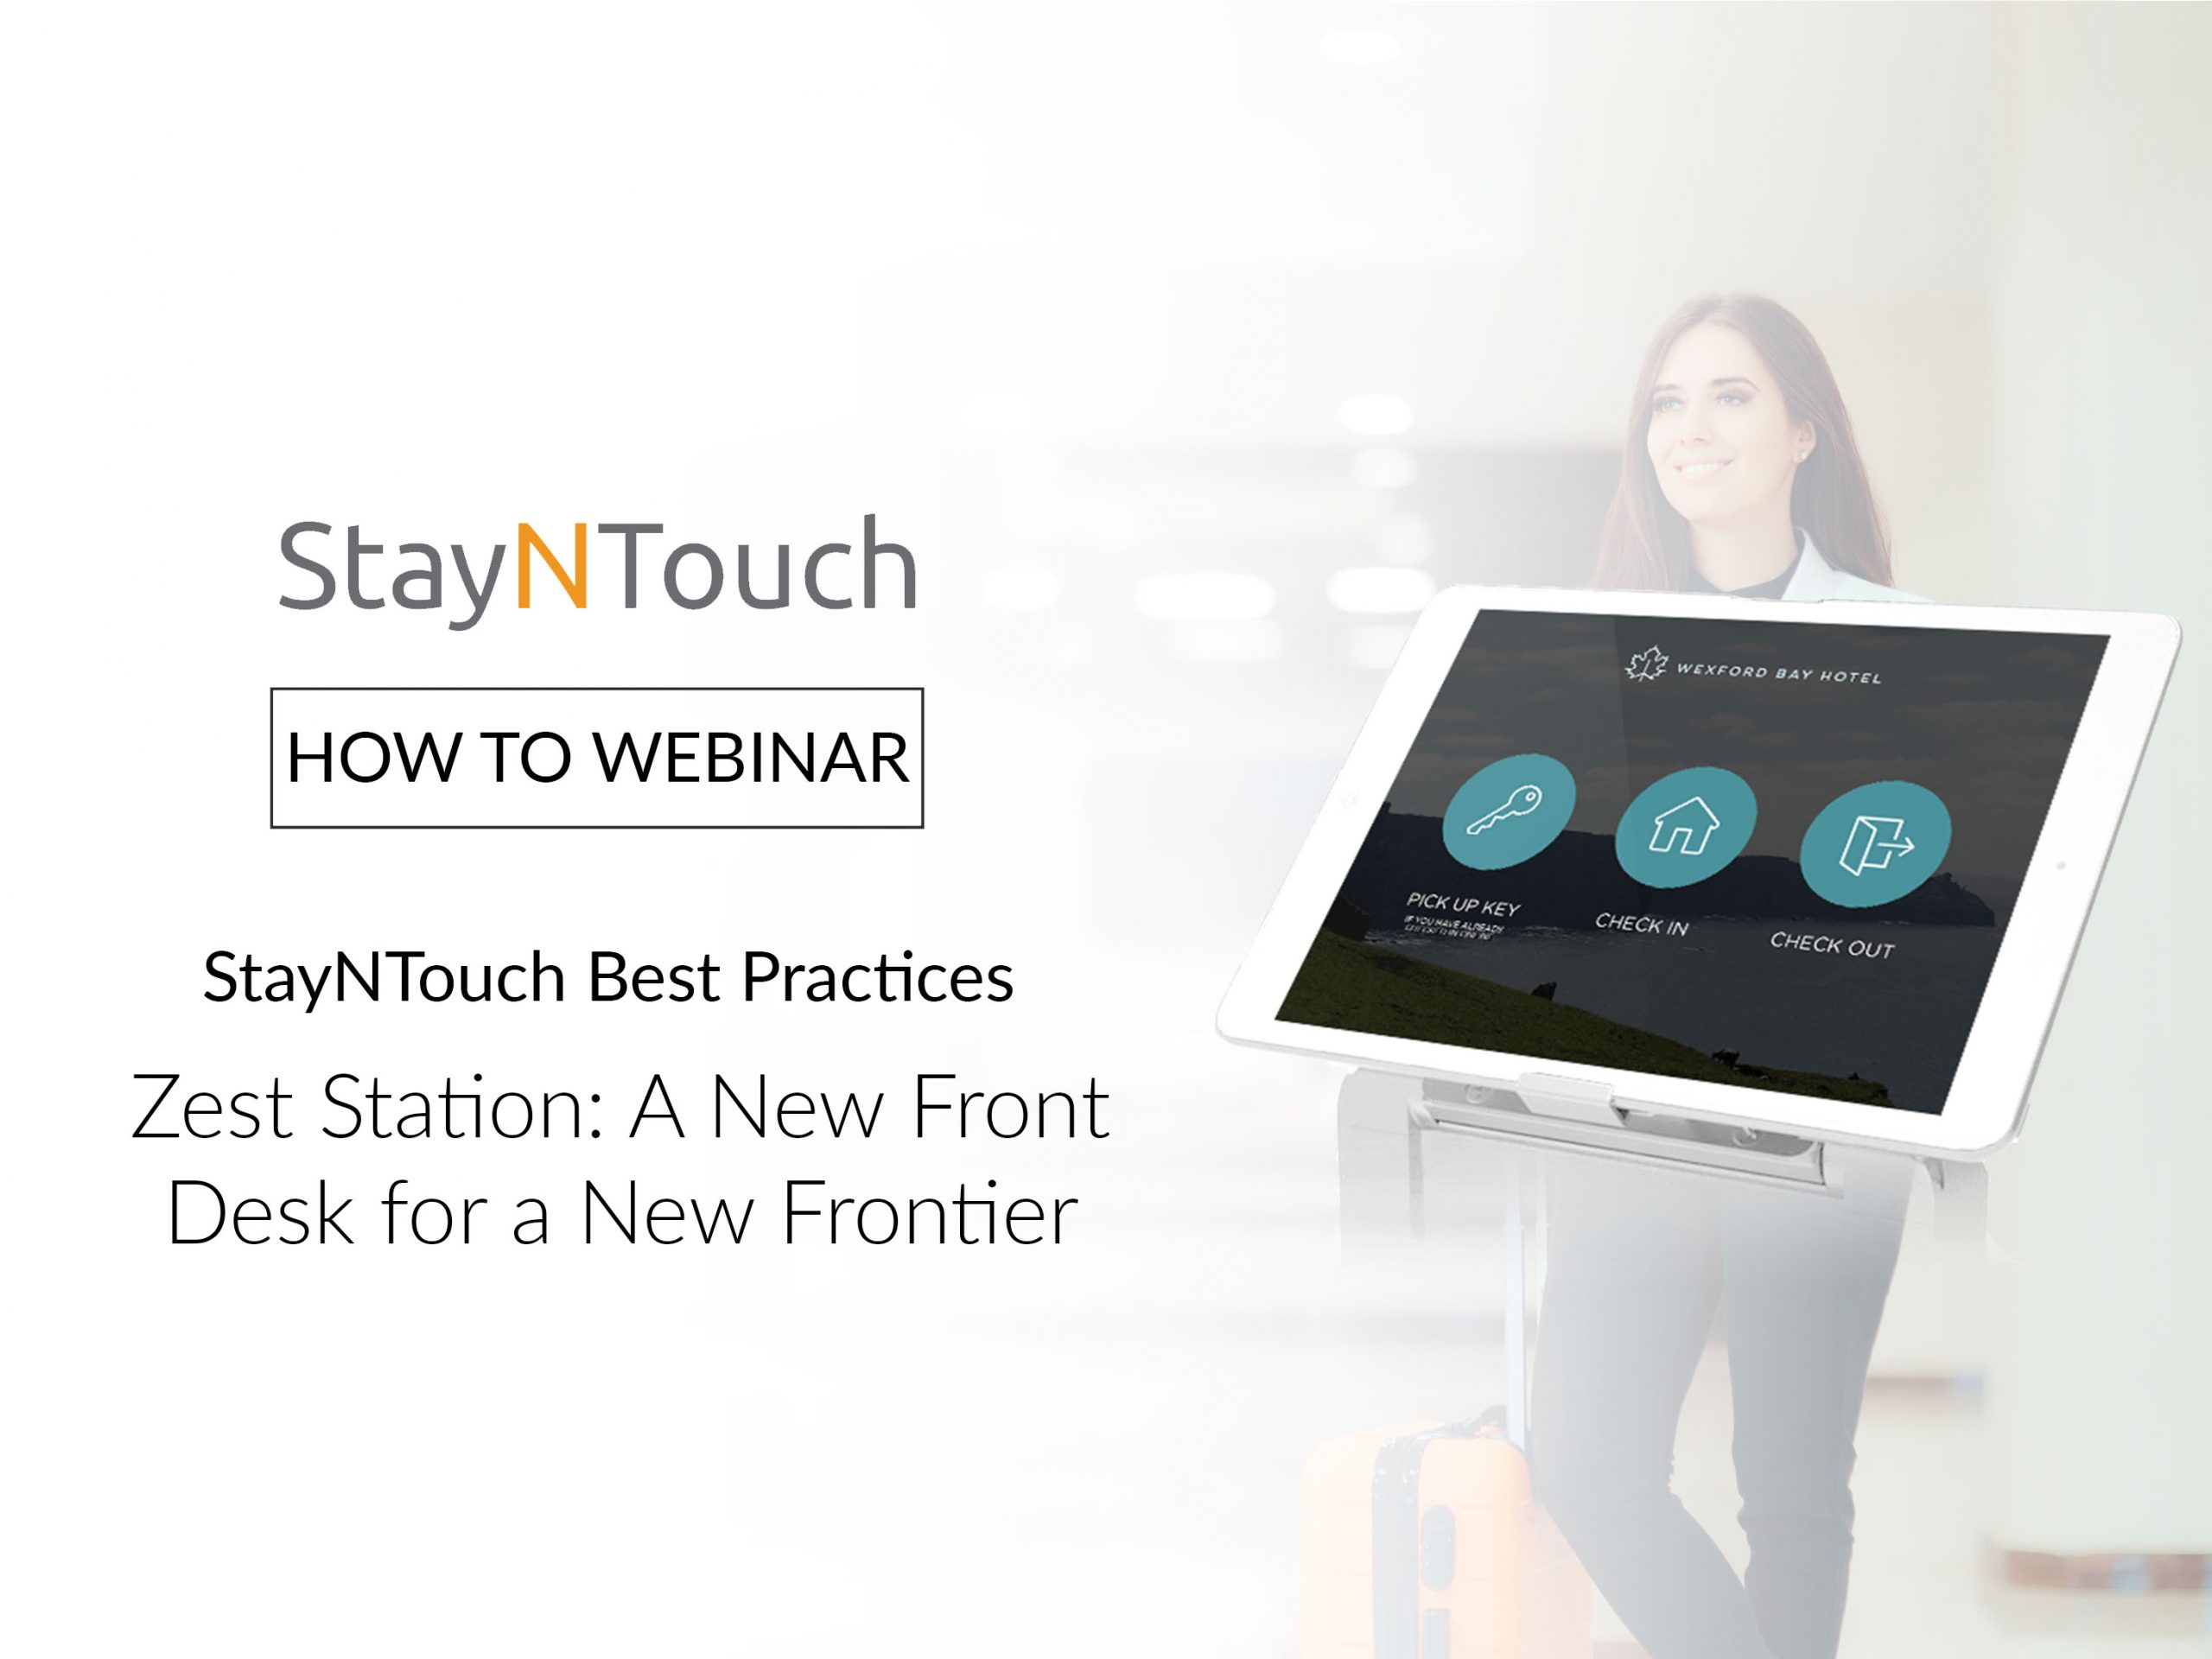 StayNTouch Best Practices Zest Station: A New Front Desk for a New Frontier